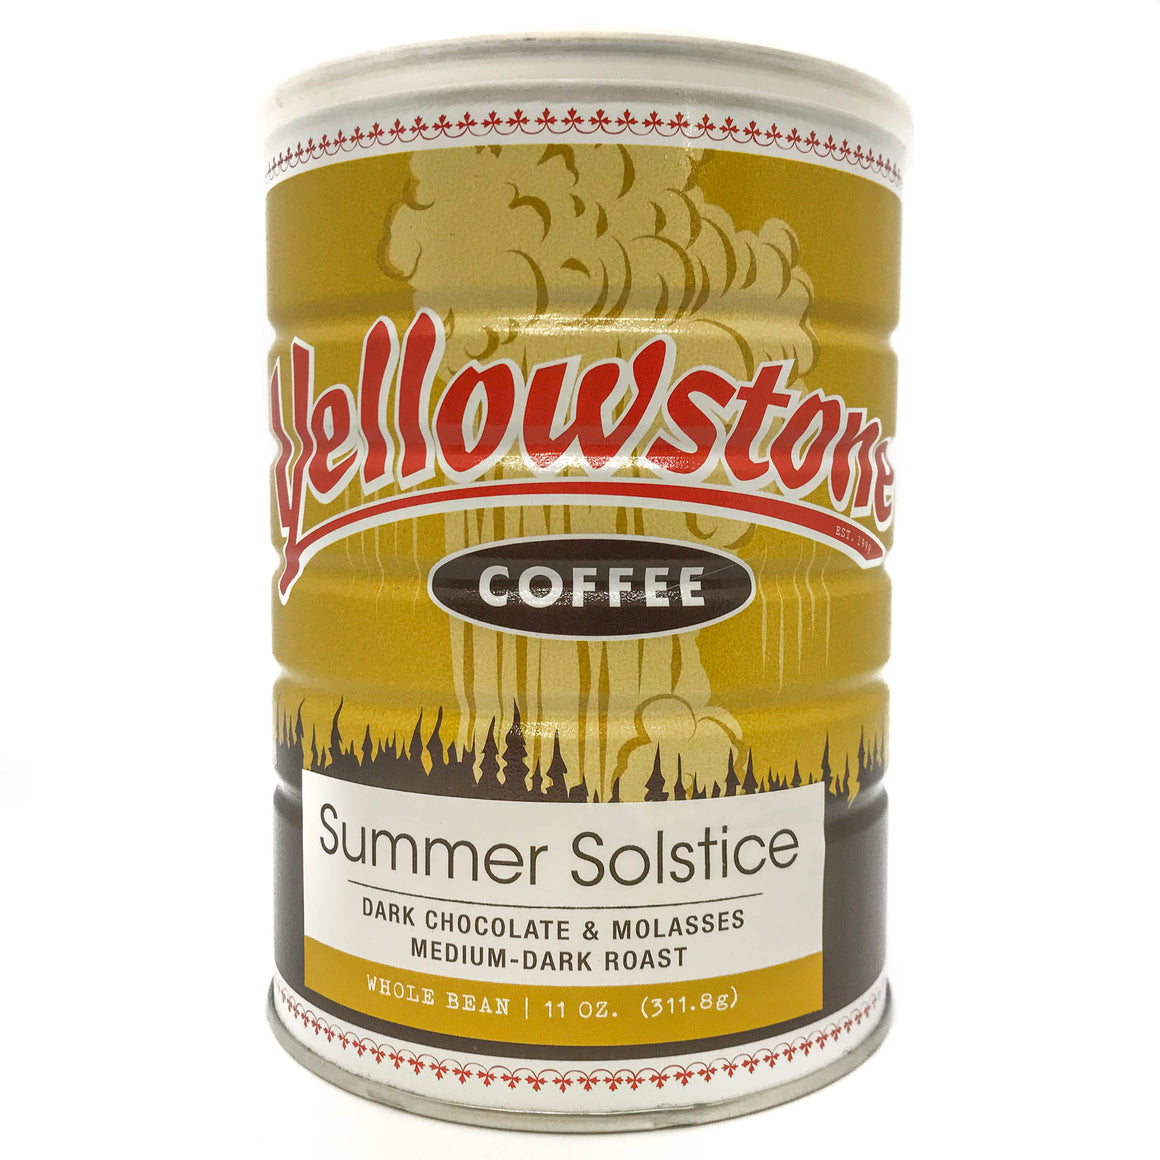 Vintage Coffee Can from Yellowstone Coffee Roasters